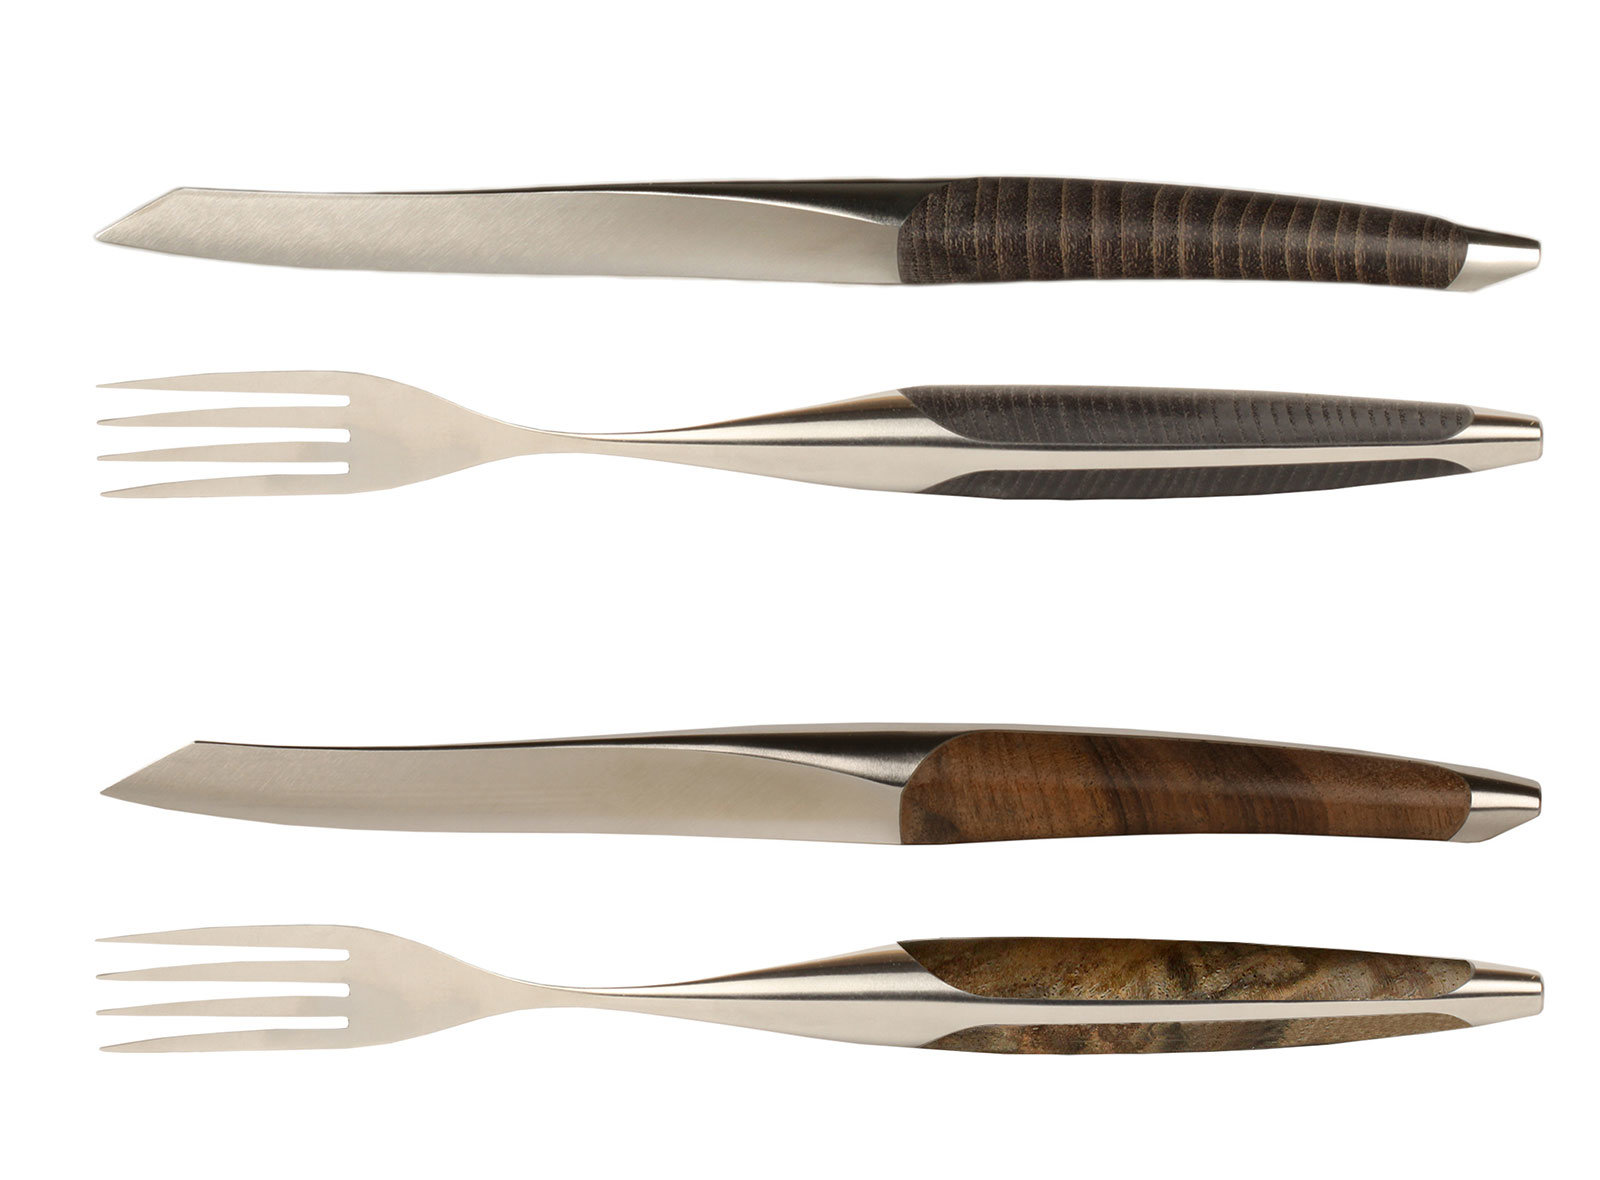 Sknife Steakmesser und Gabel Swiss Food Design Market